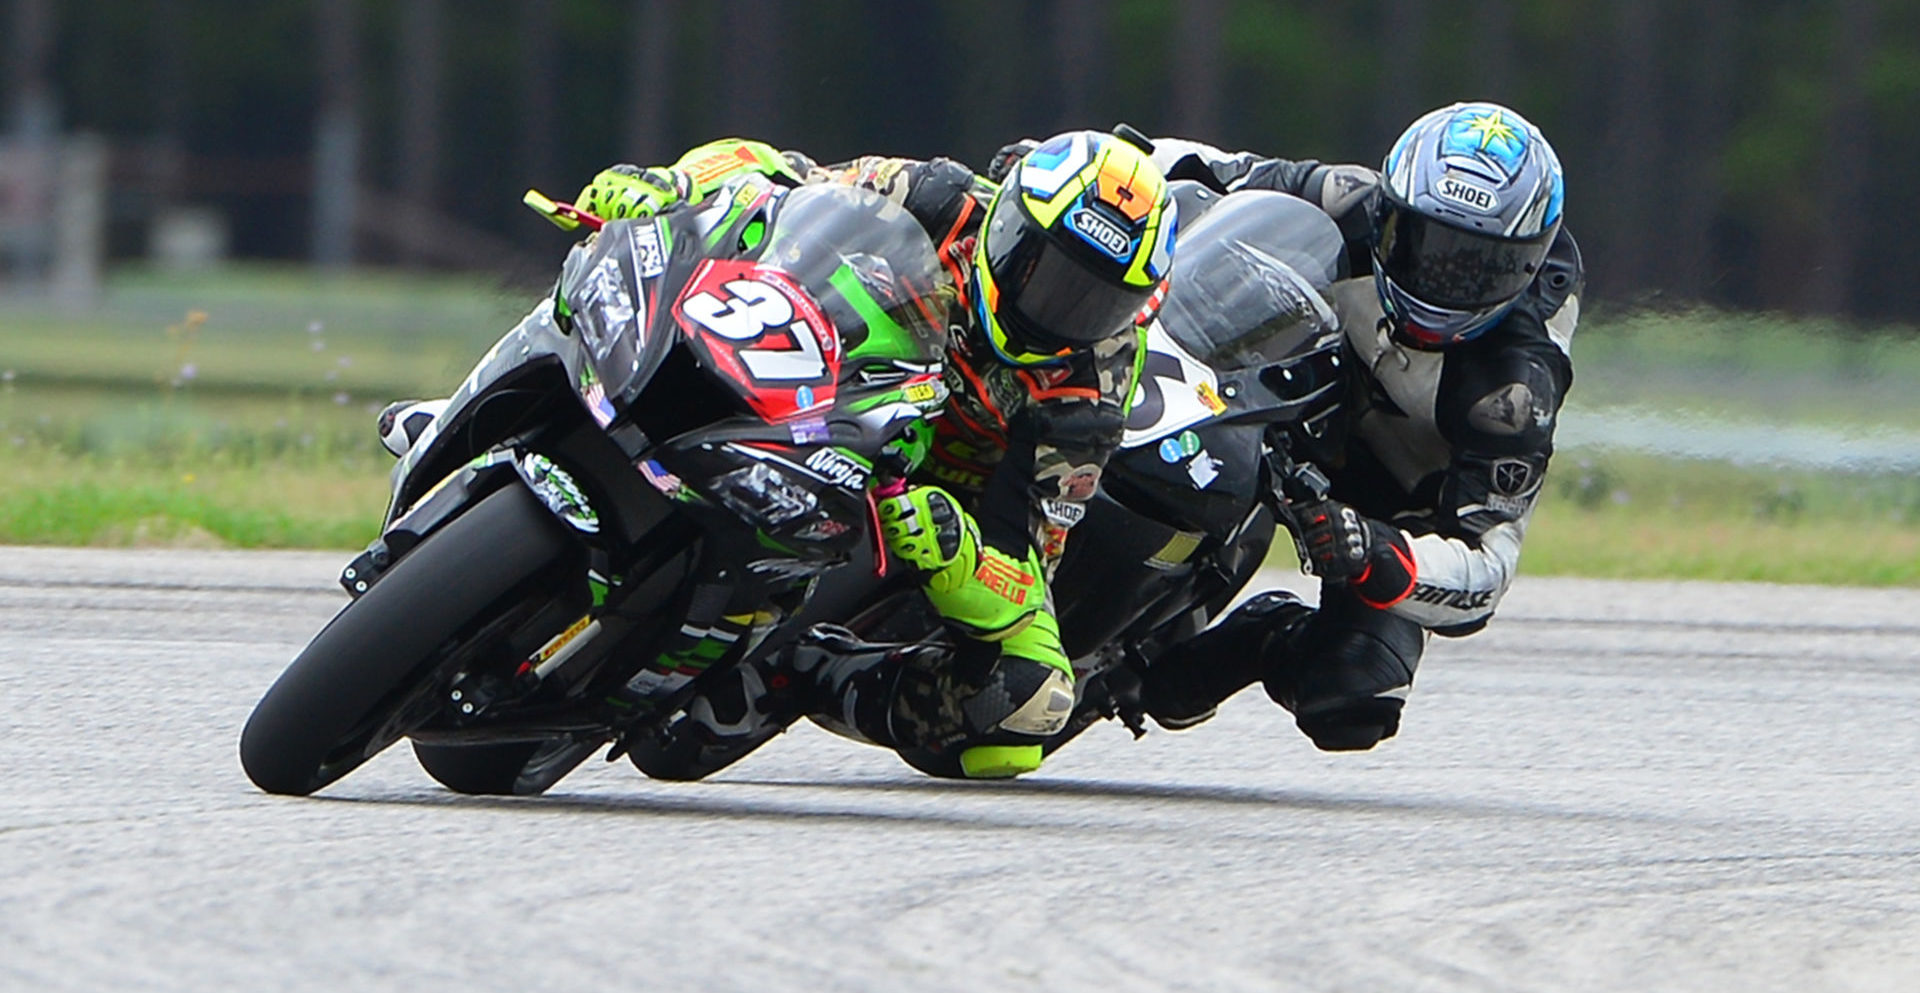 Stefano Mesa (37) leading Vasiliy Zhulin (16) during a CCS race event at Carolina Motorsports Park in 2019. Photo by Lisa Theobald, courtesy of ASRA/CCS.